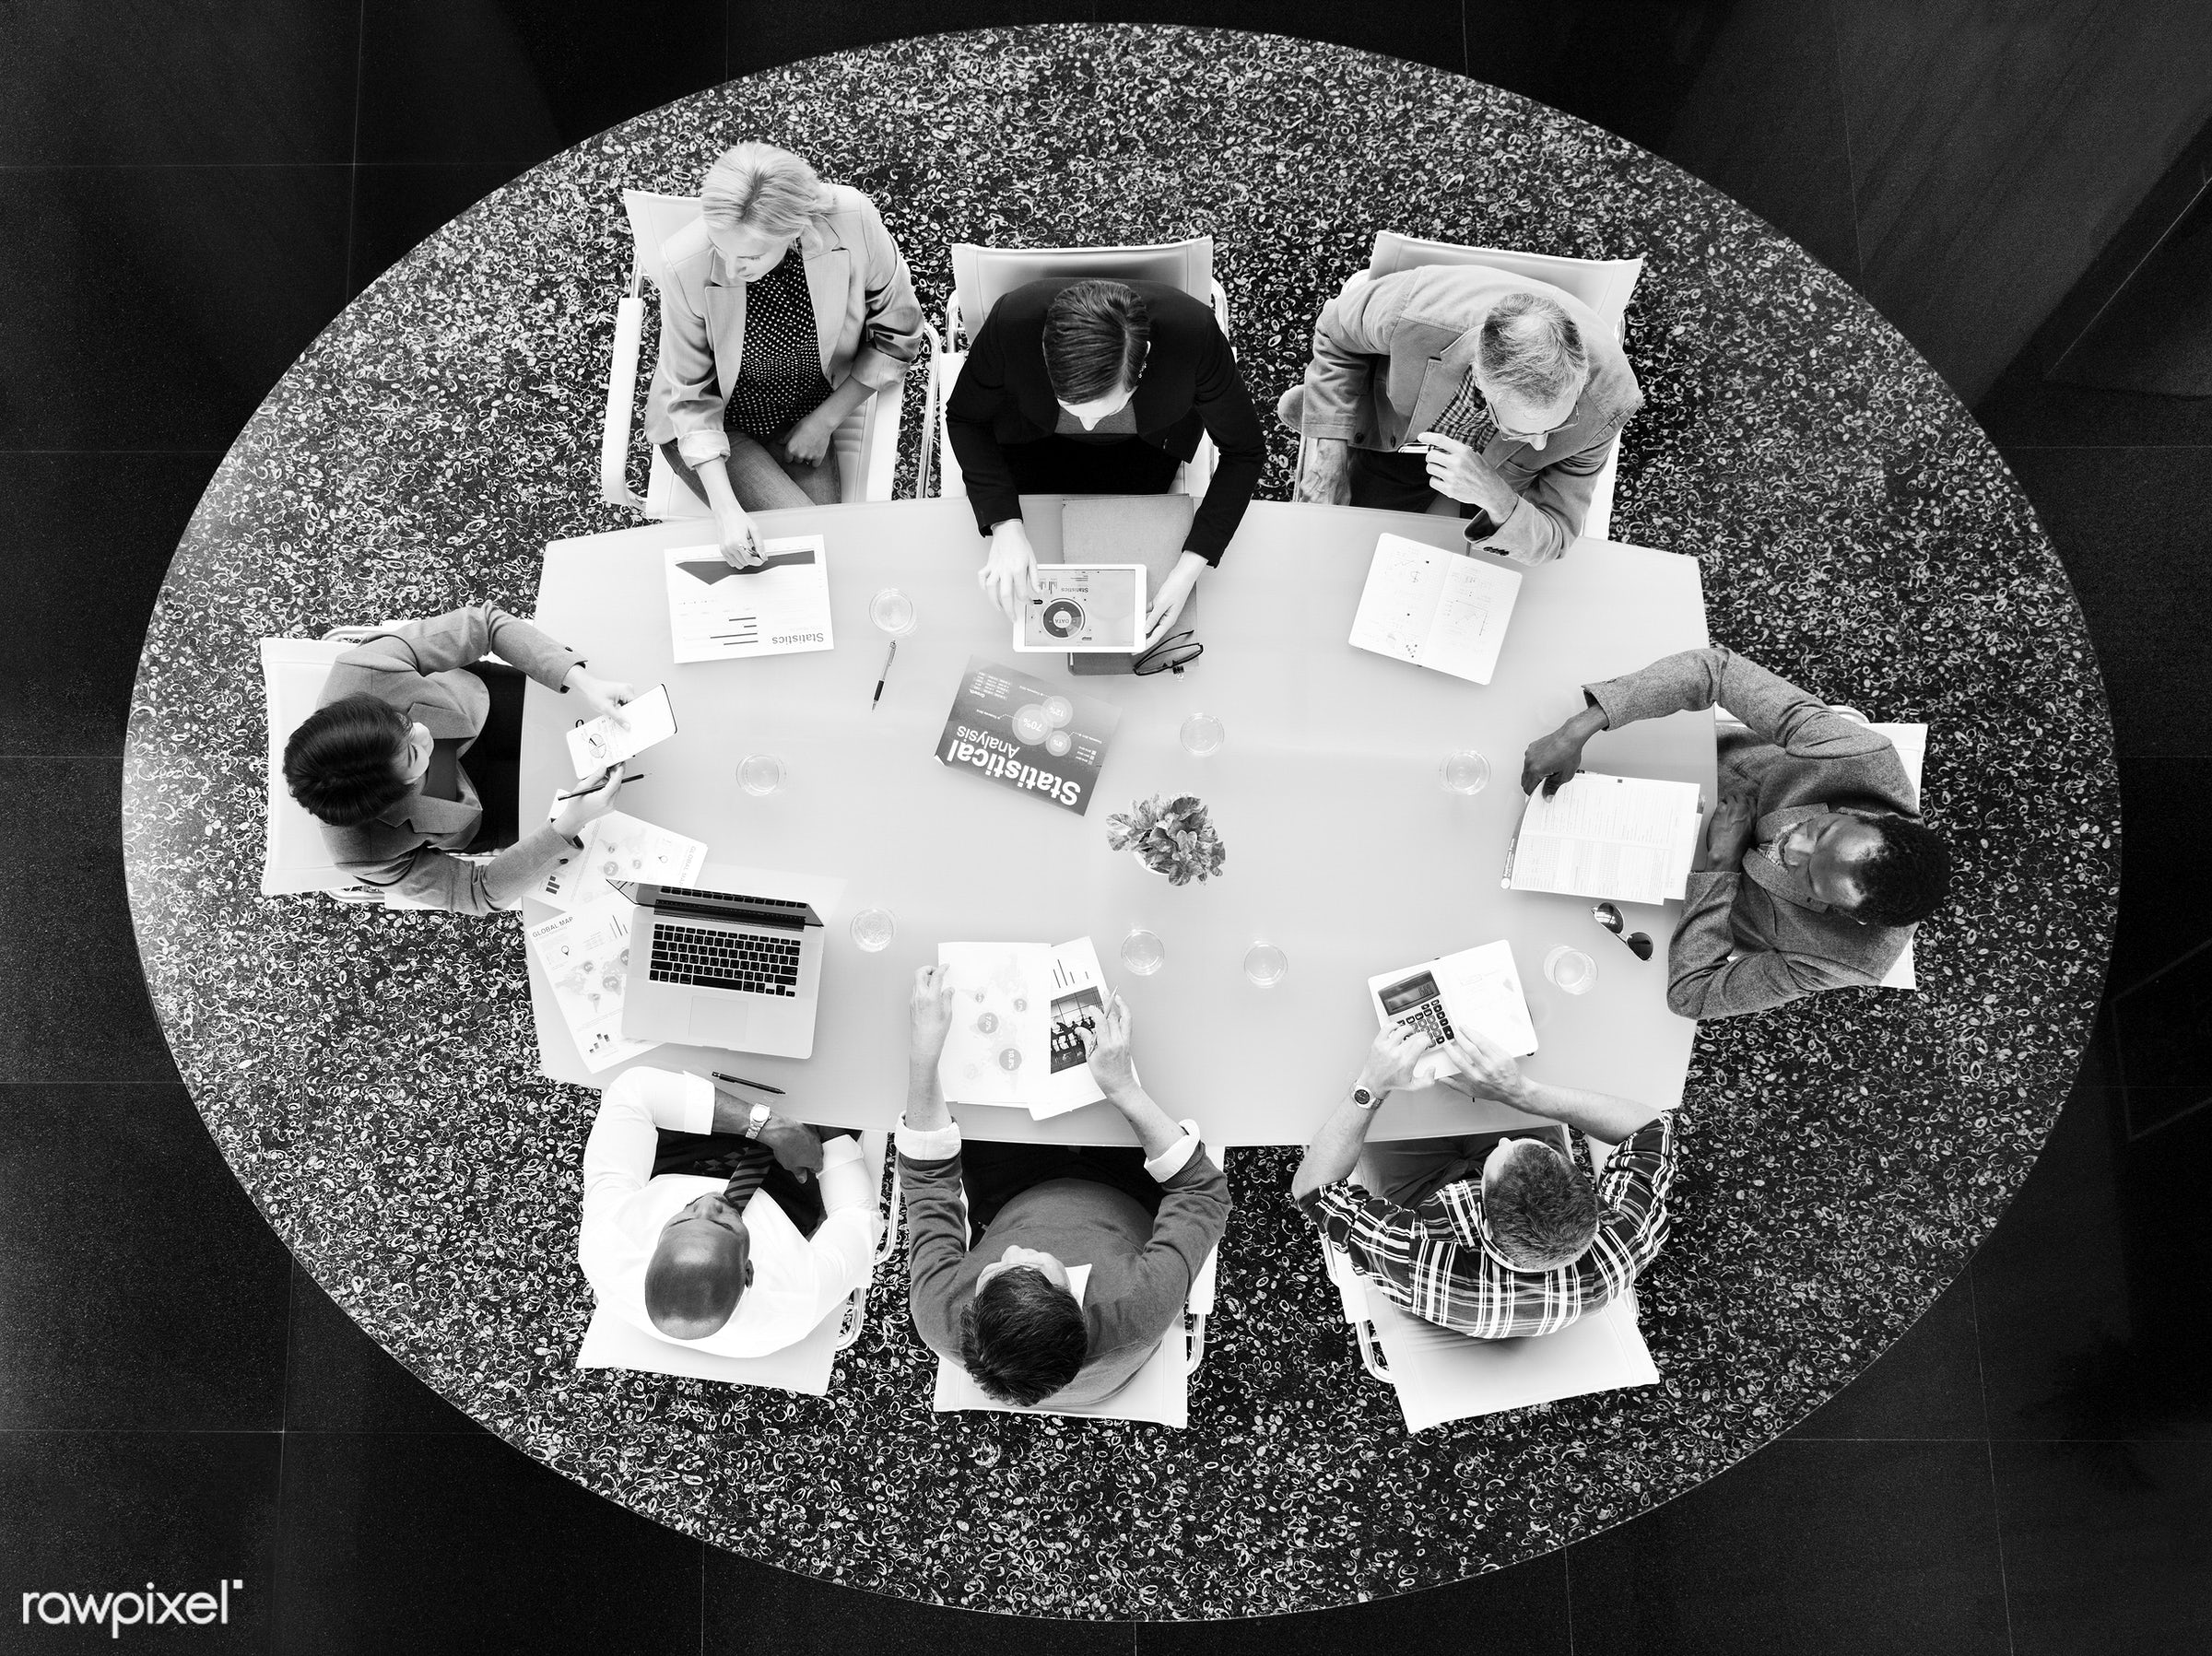 aerial view, board meeting, board room, brainstorming, business, business issues, business people, business person,...